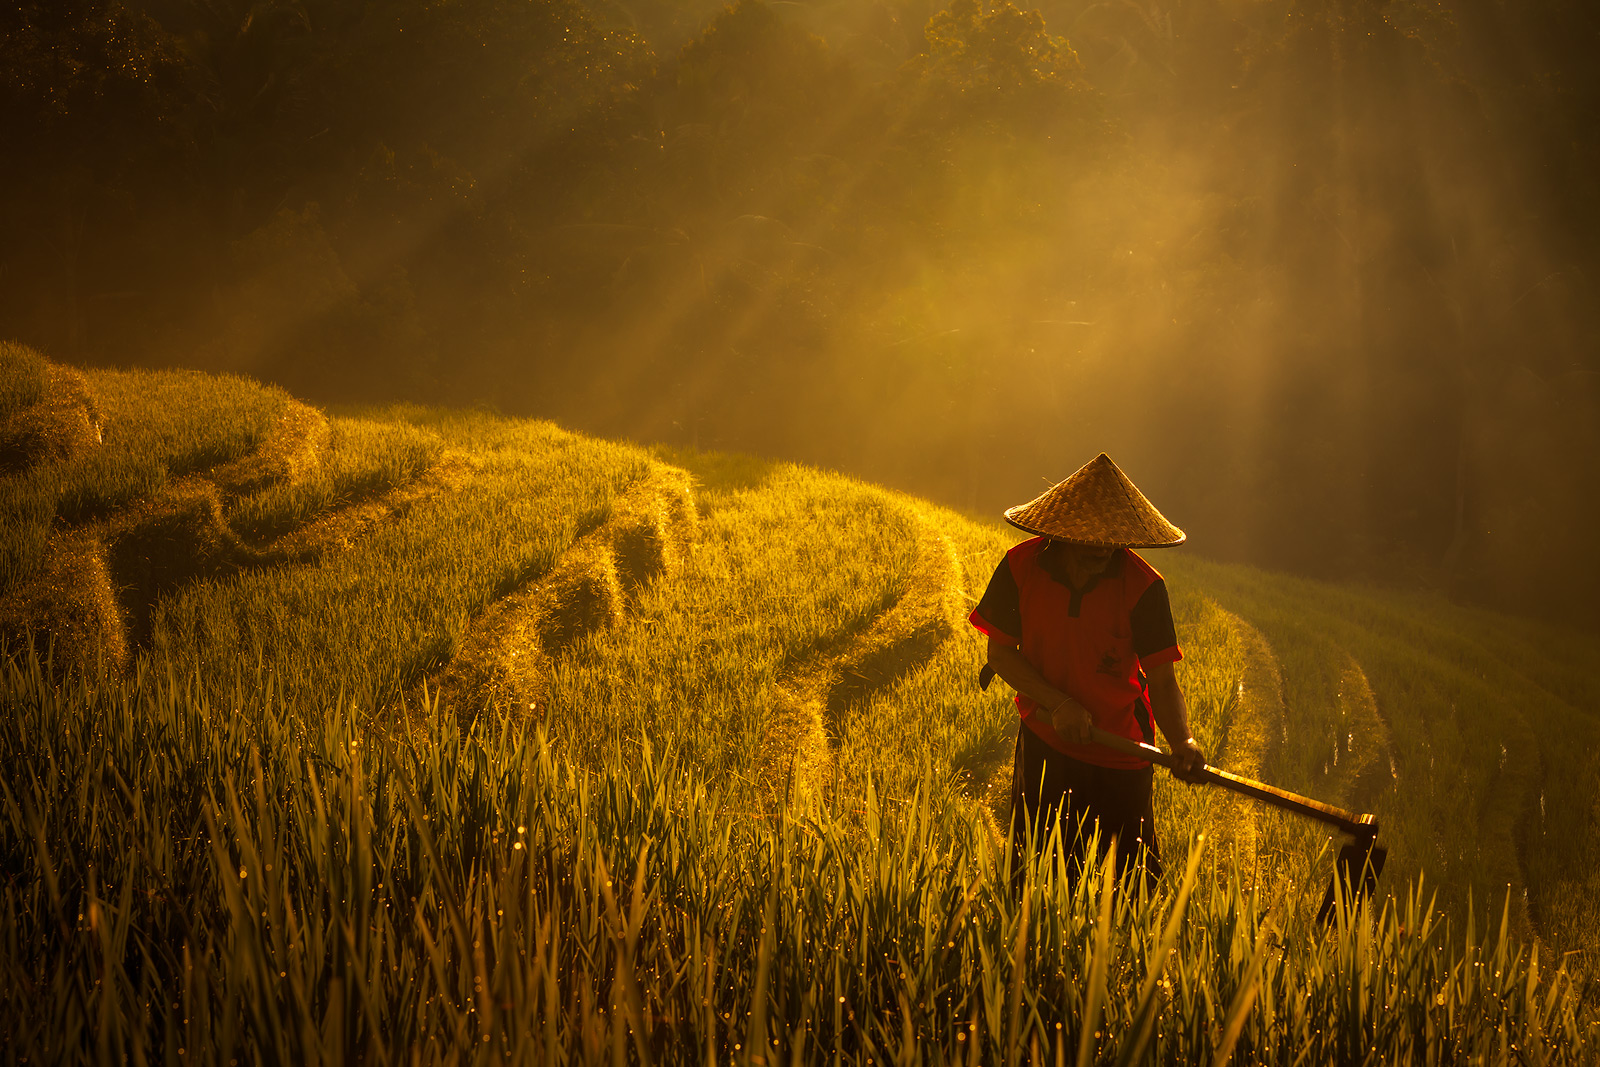 Indonesian rice farmer working in early morning with brilliant sunbeams behind him.